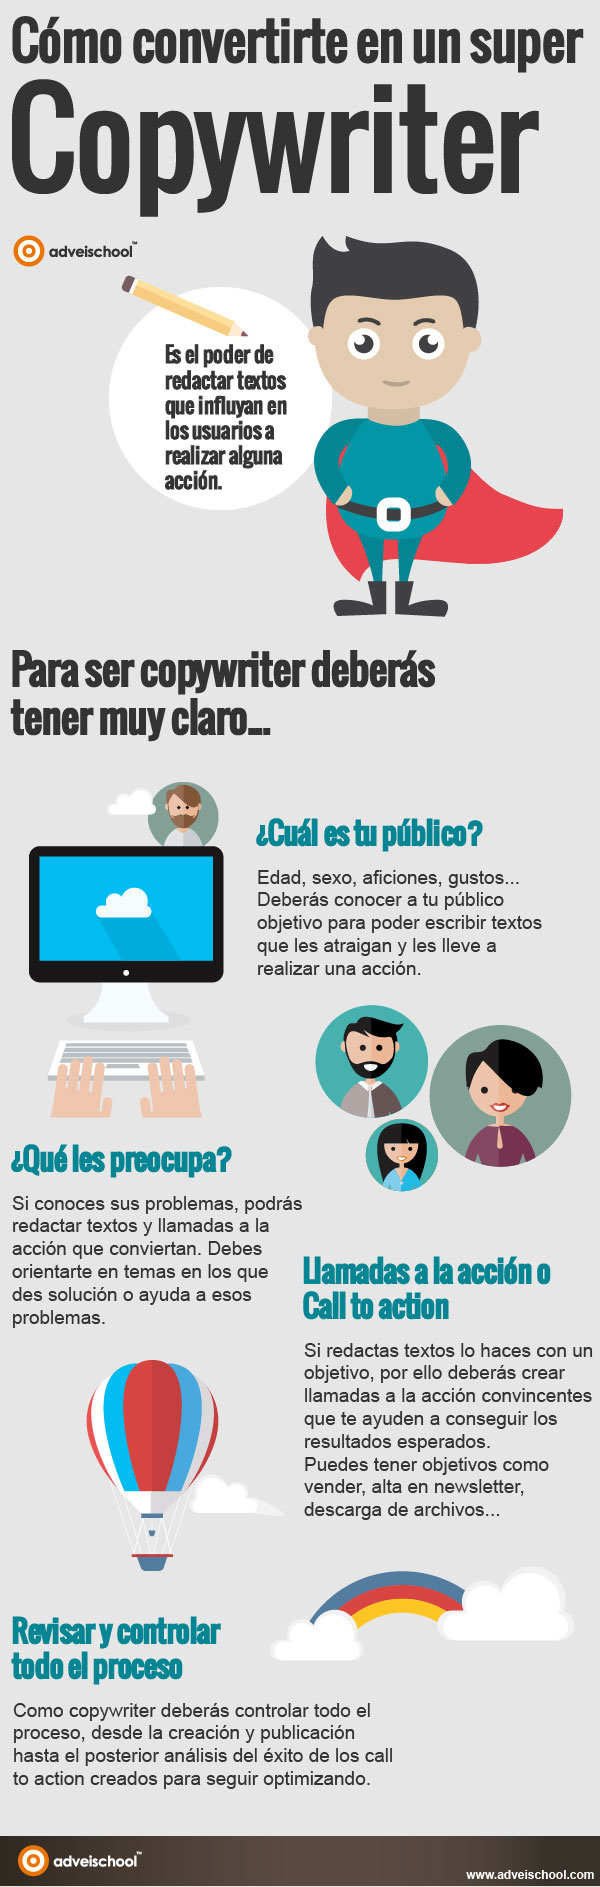 Cómo convertirte en un super copywriter #infografia #infographic #marketing